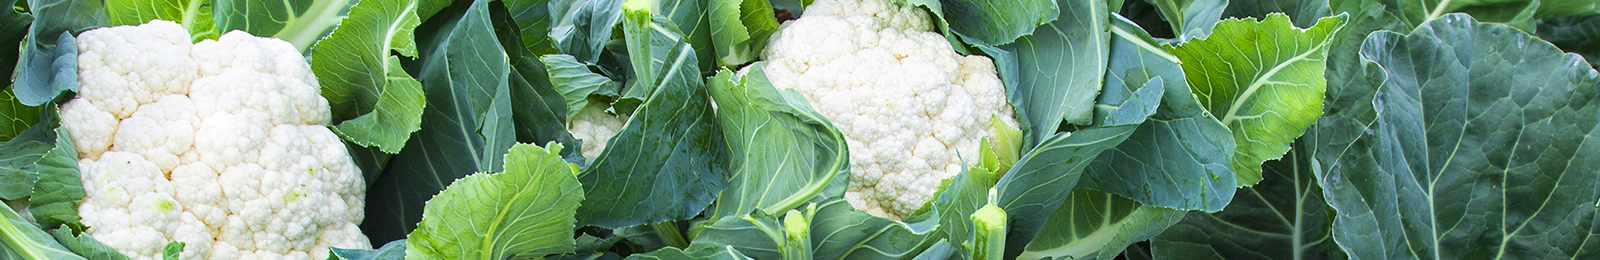 Cauliflower: Sow and Grow Guide